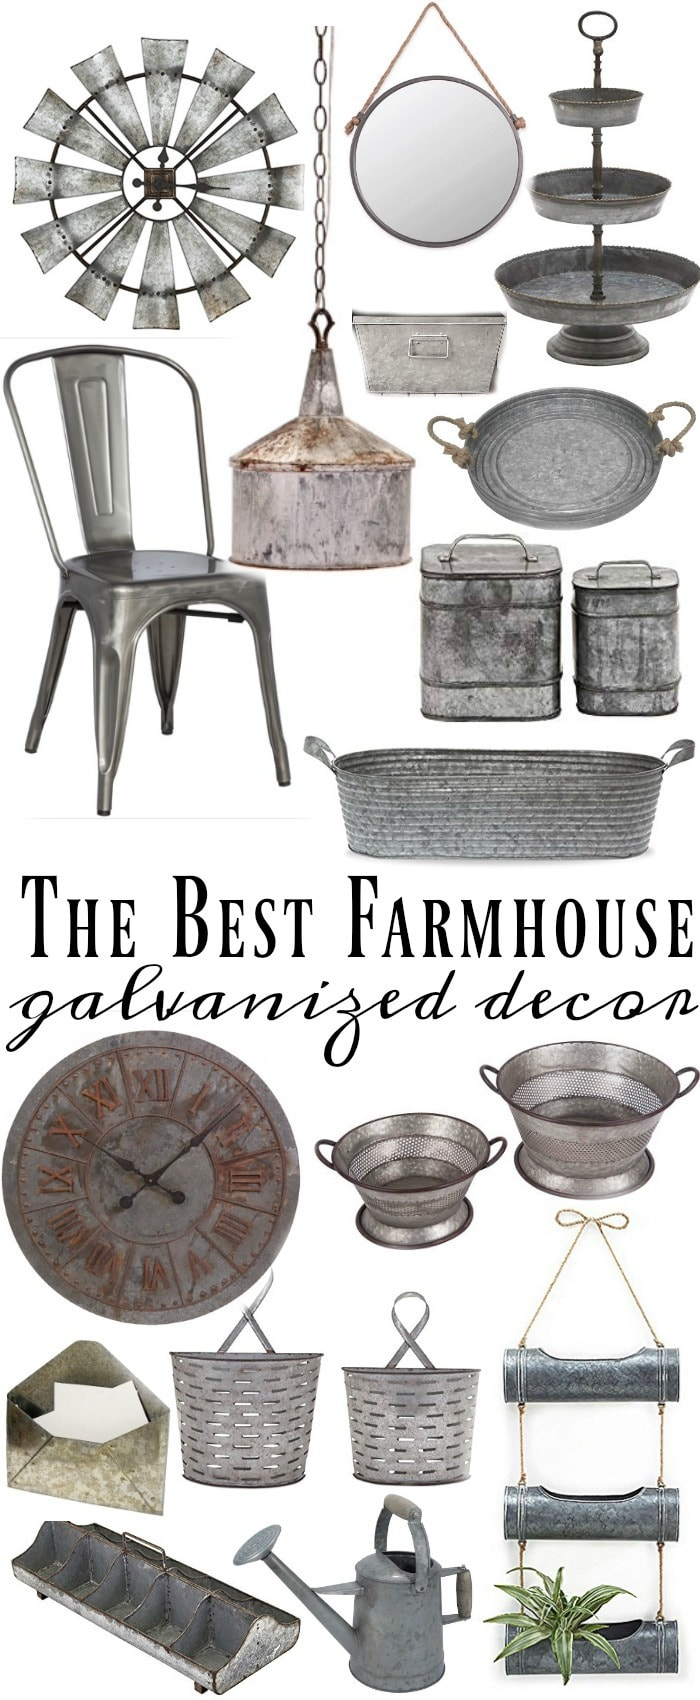 Where To Find The Best Galvanized Home Decor